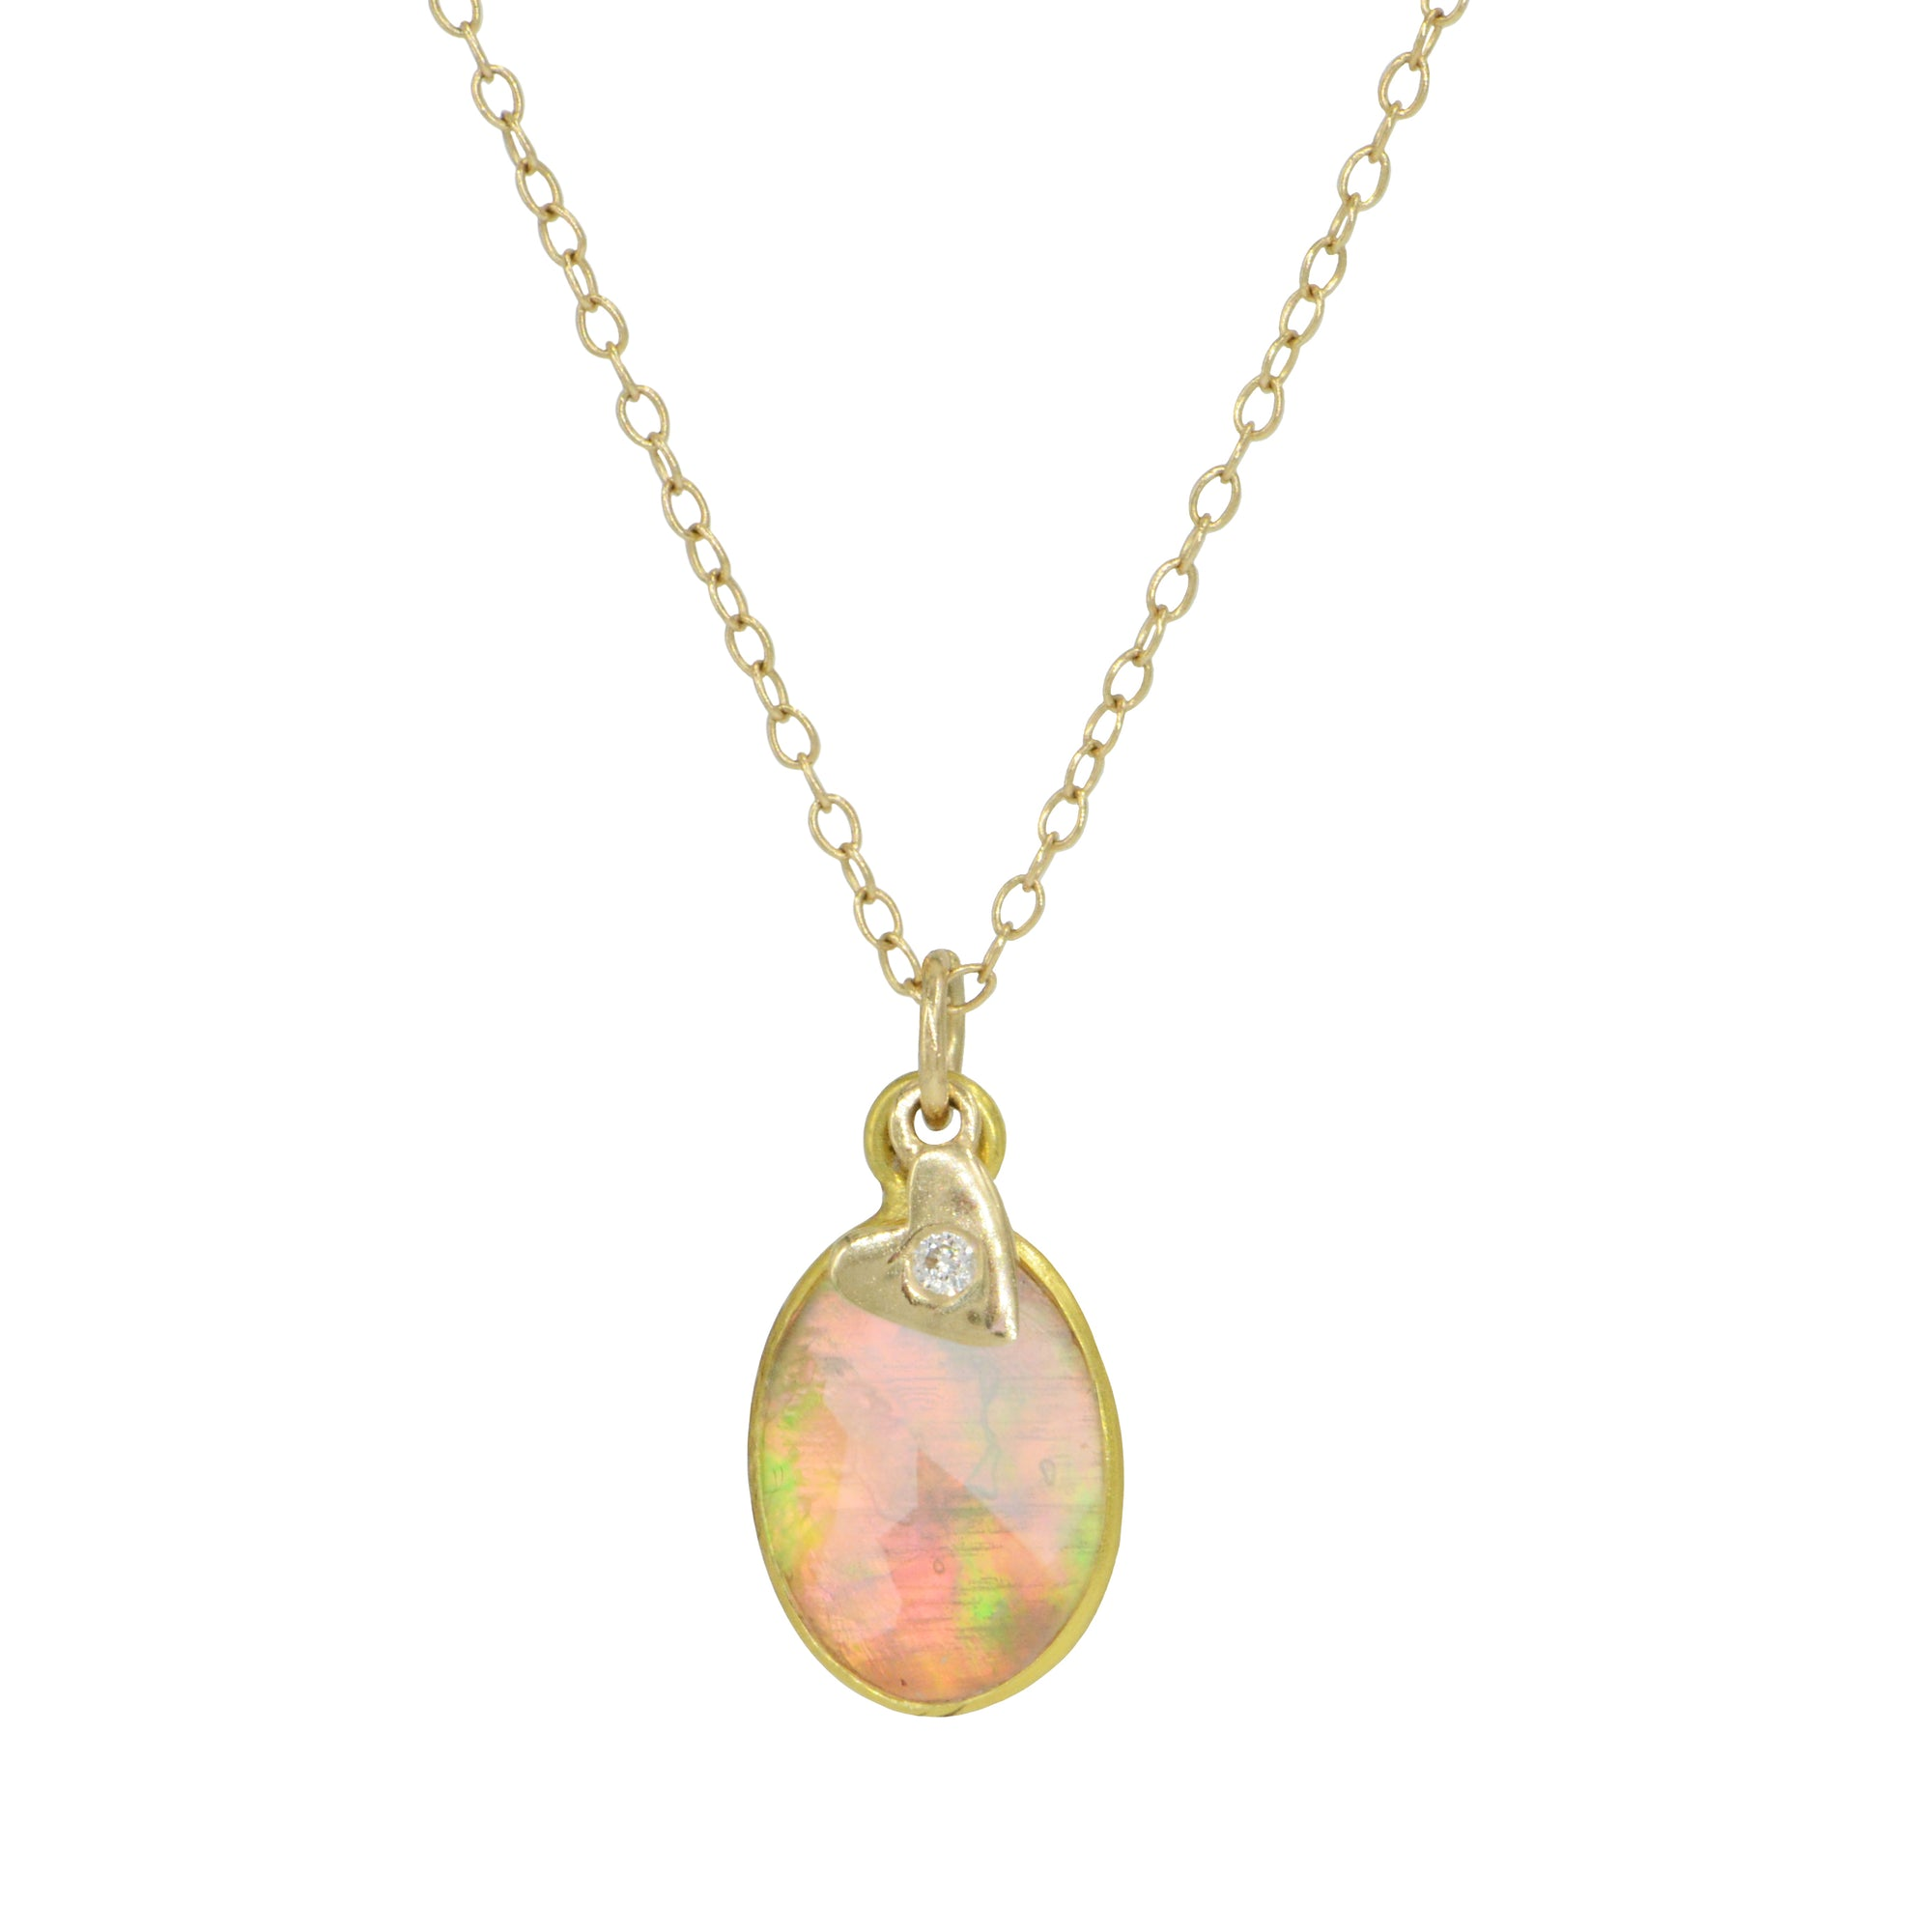 Ethiopian Opal Doublet Necklace With Diamond Heart Charm